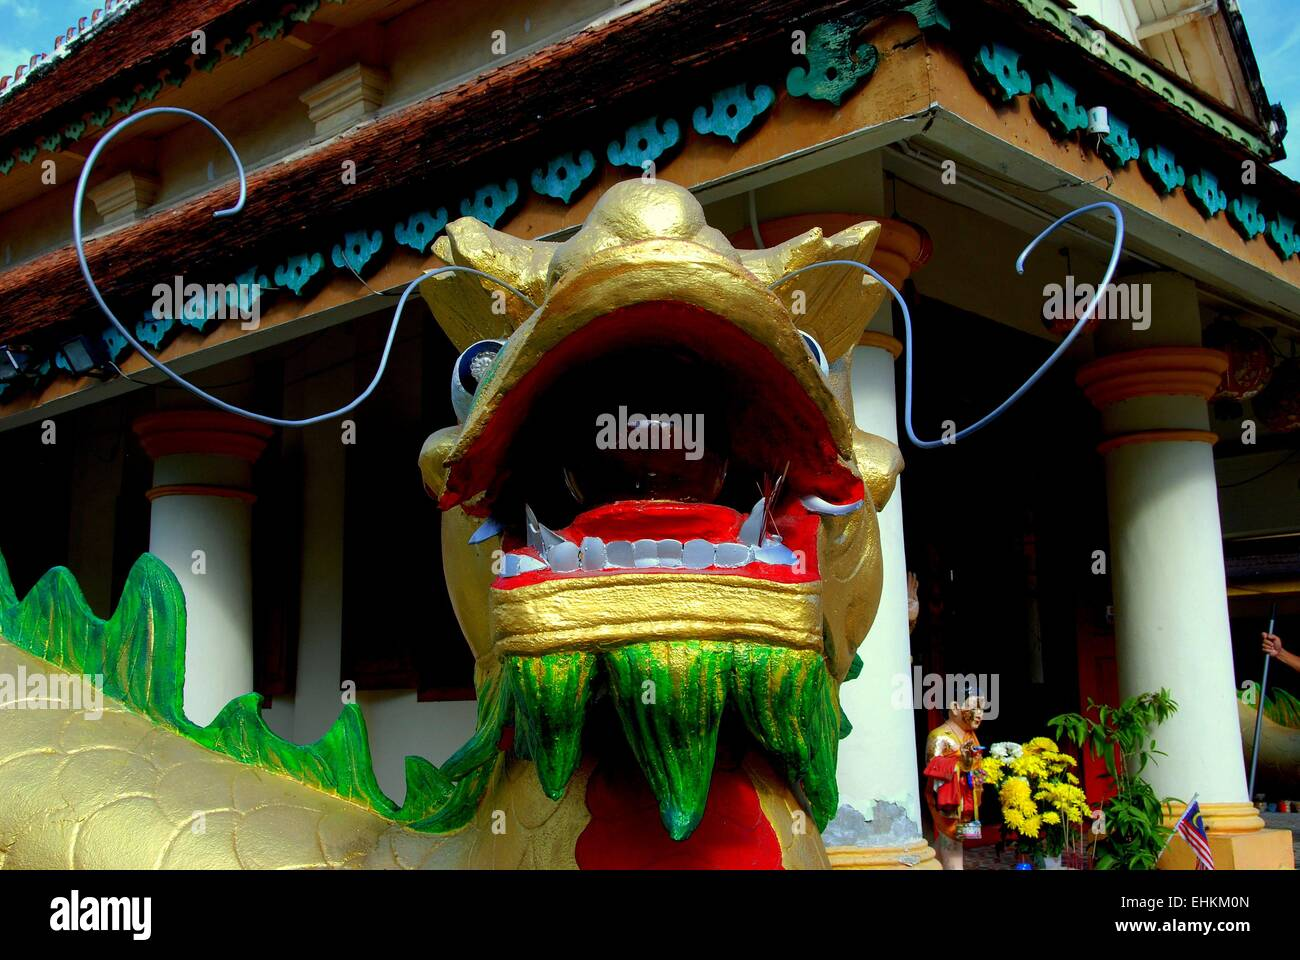 Georgetown, Malaysia: Closeup of an immense carved dragon with open mouth holding a symbolic ball at Thai Wat Buppharam Stock Photo